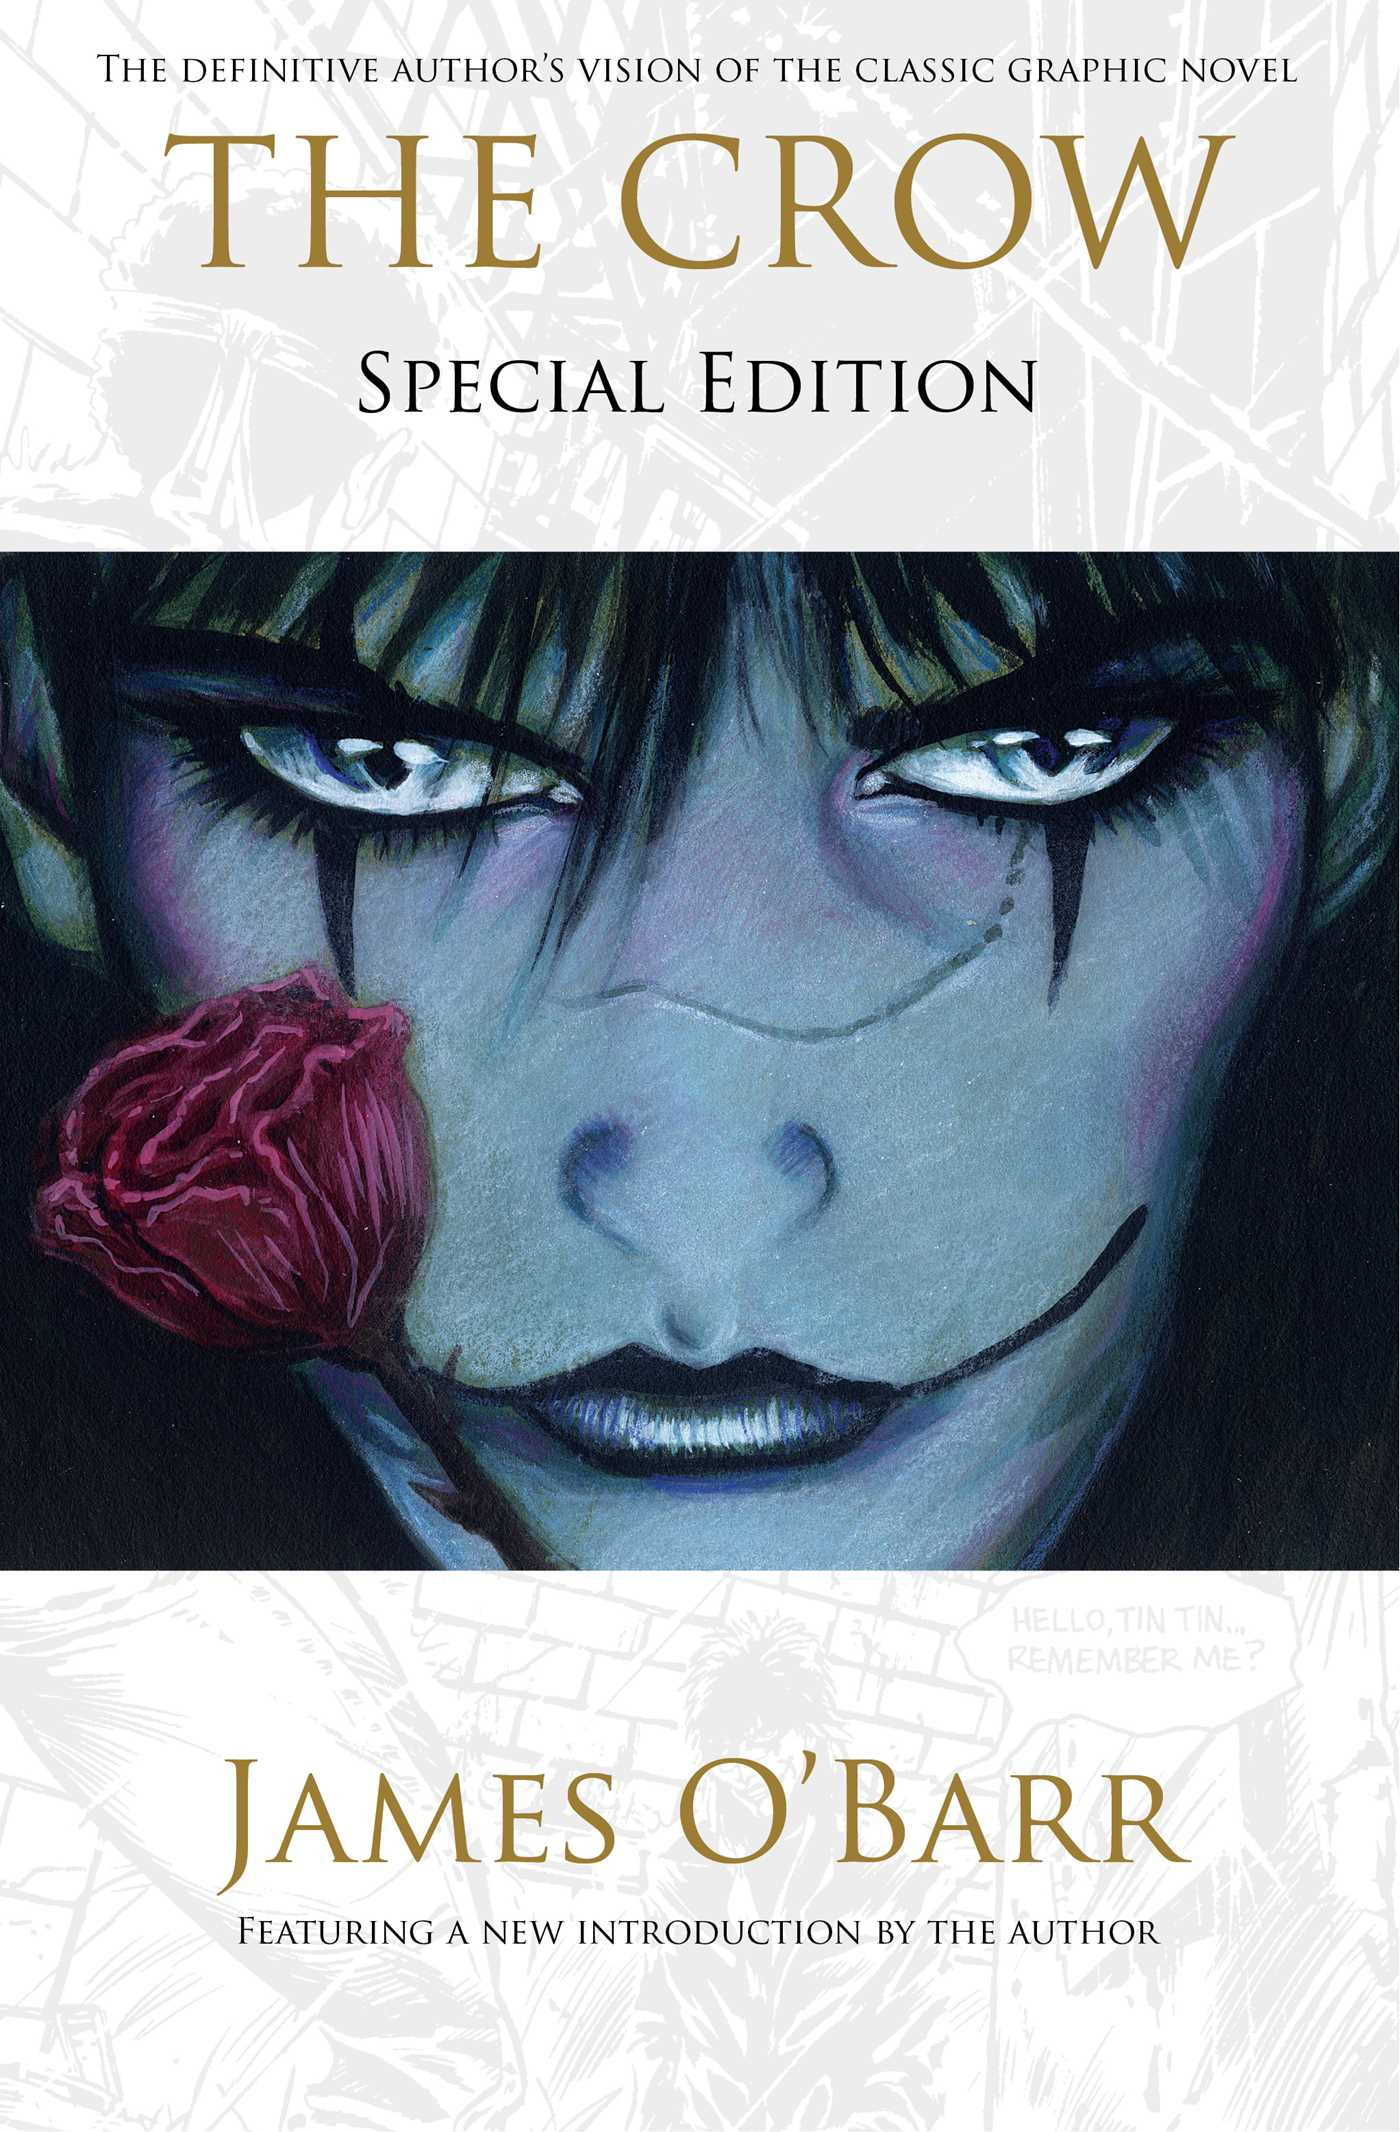 The Crow: Special Edition by J. O'Barr